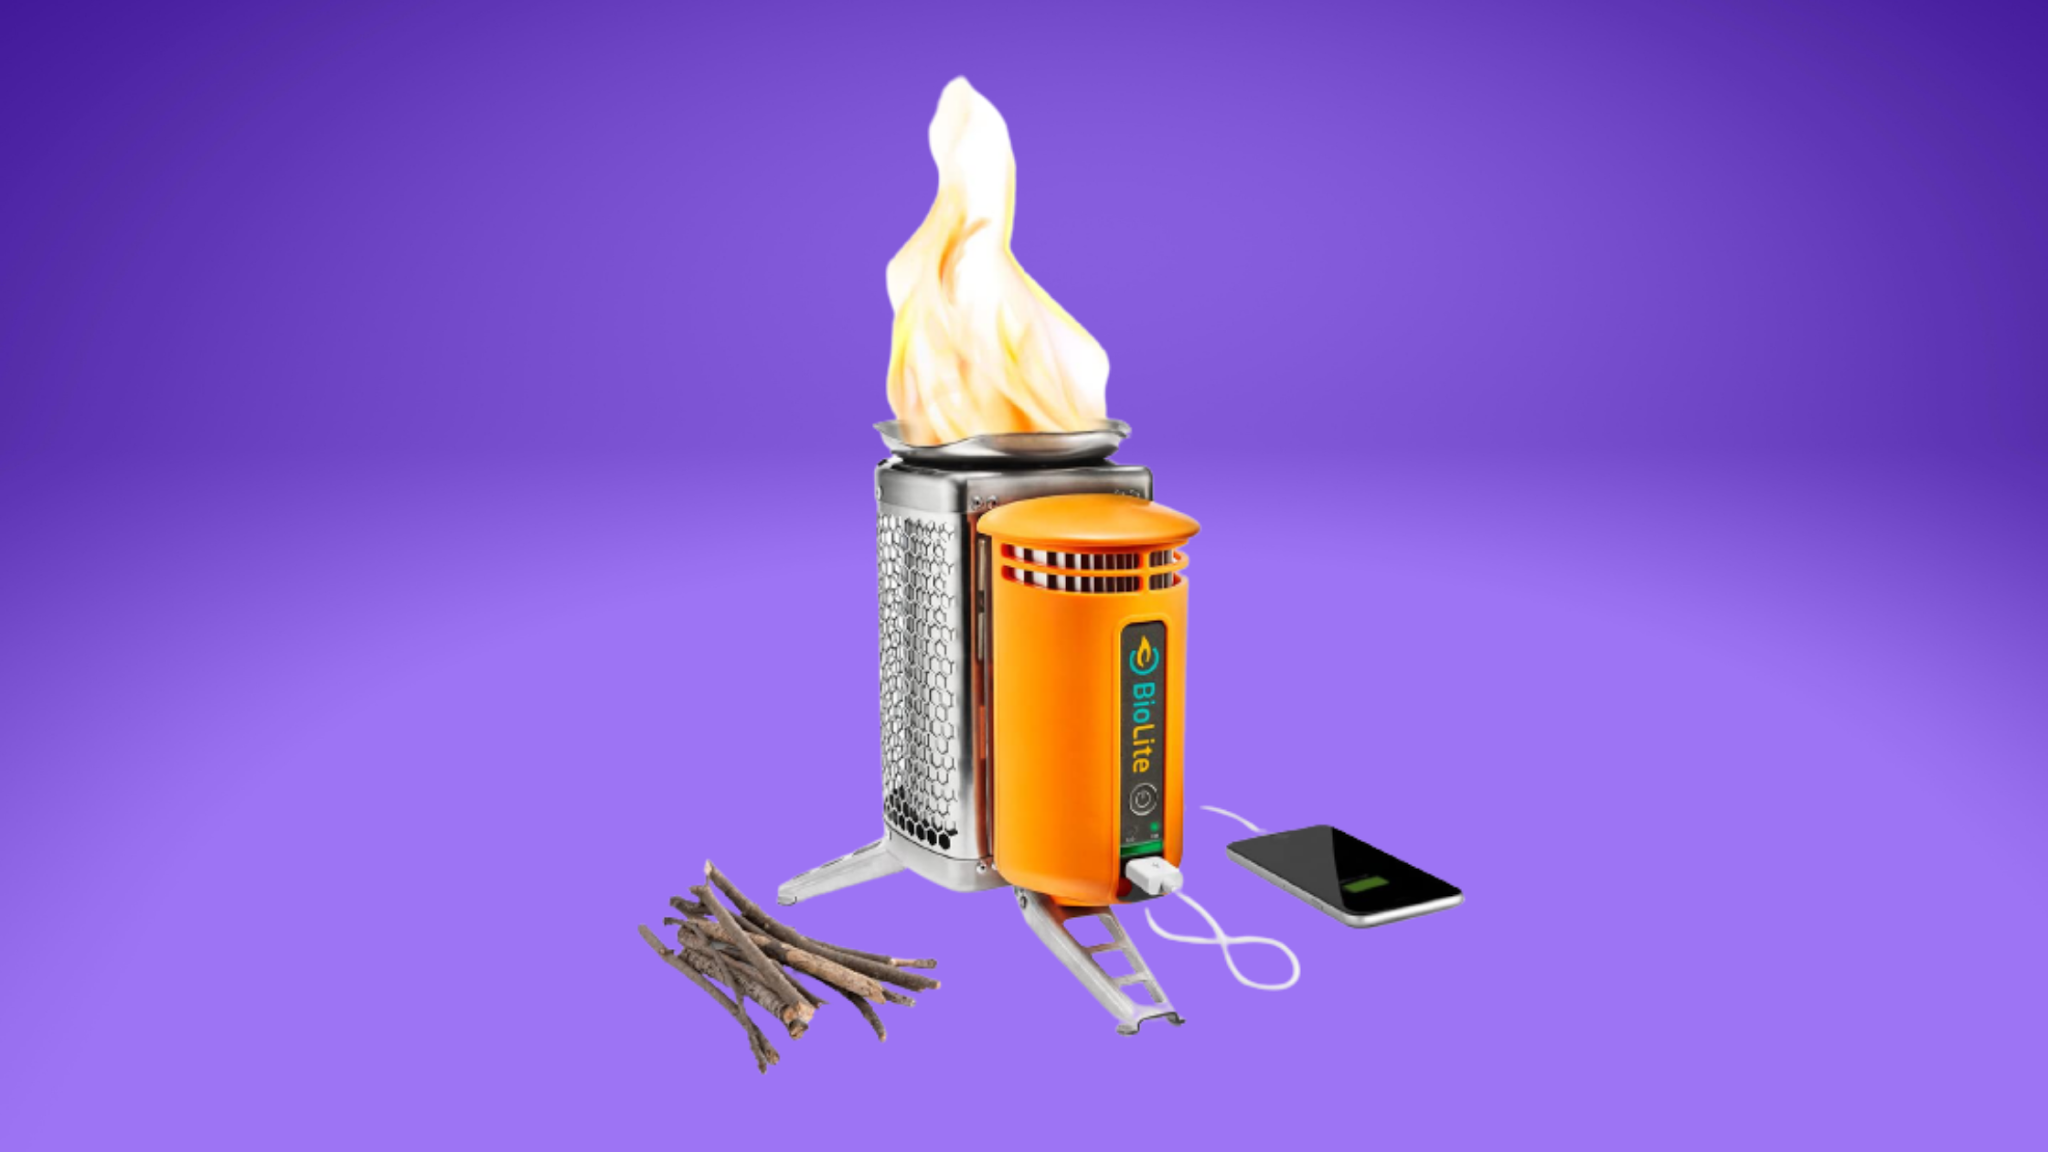 Best BioLite Wood Burning CampStove First Generation Review